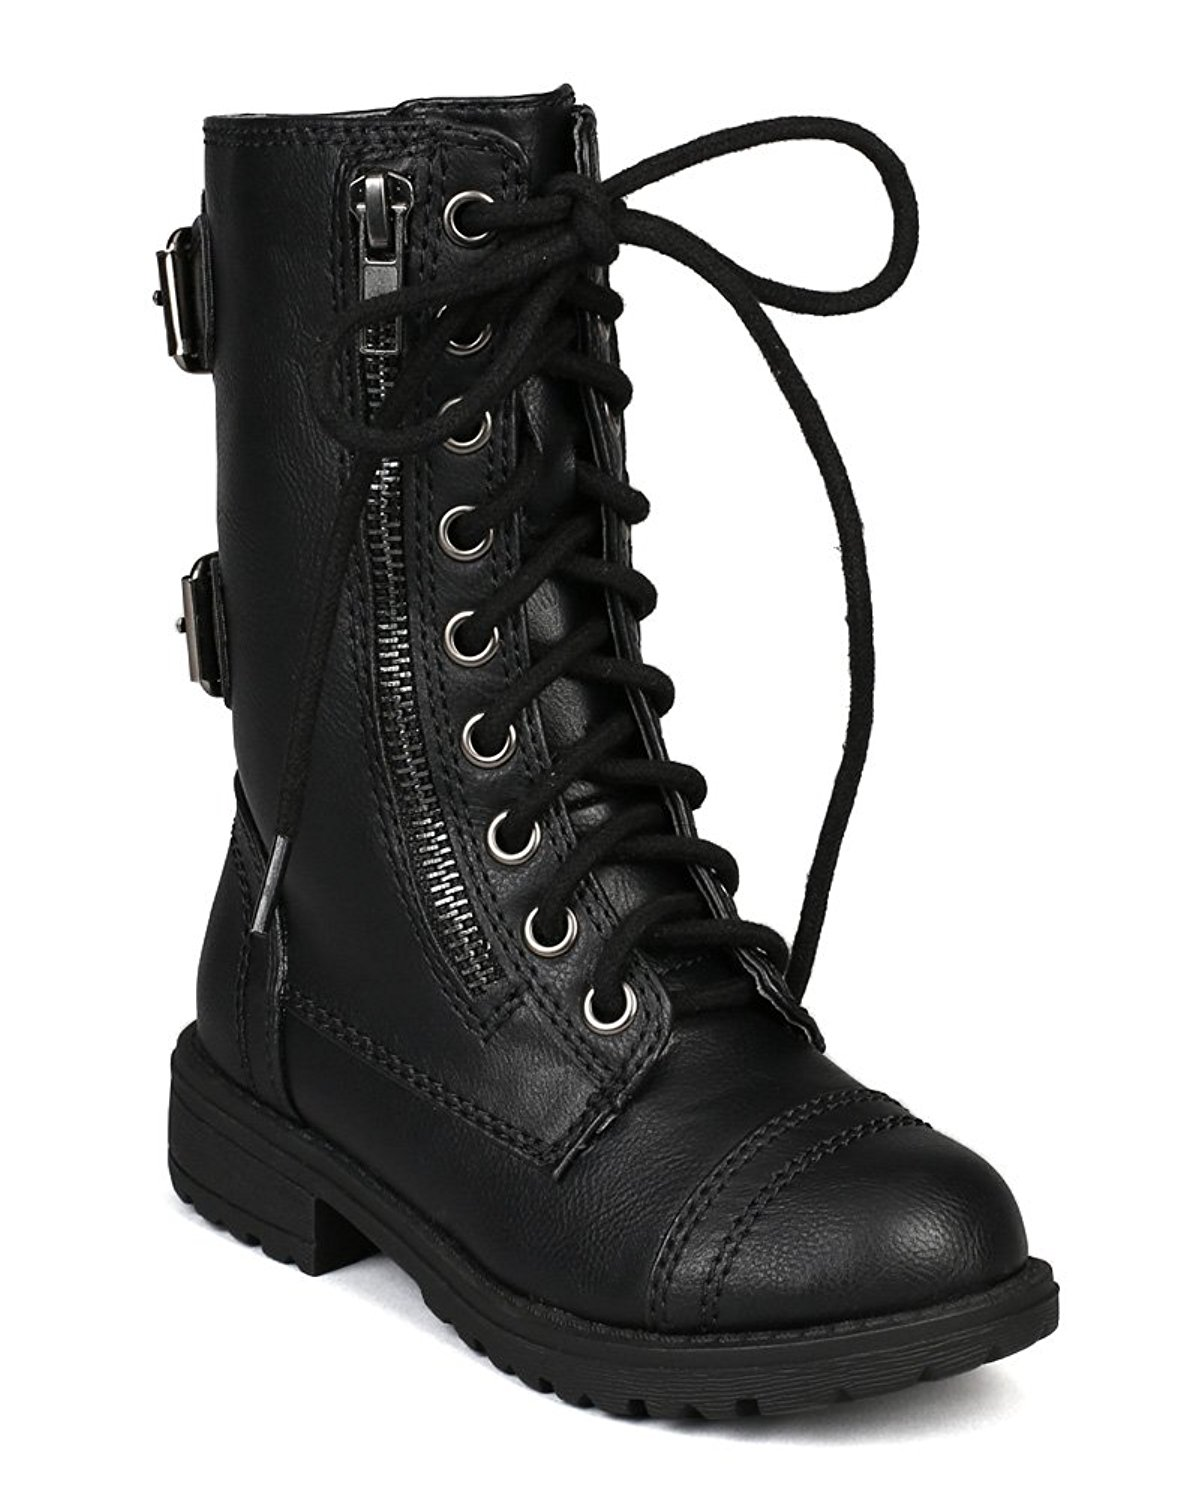 173e4e3eccaa Get Quotations · Soda Girls Kids Dome-2S Lace Up Military Combat Boots